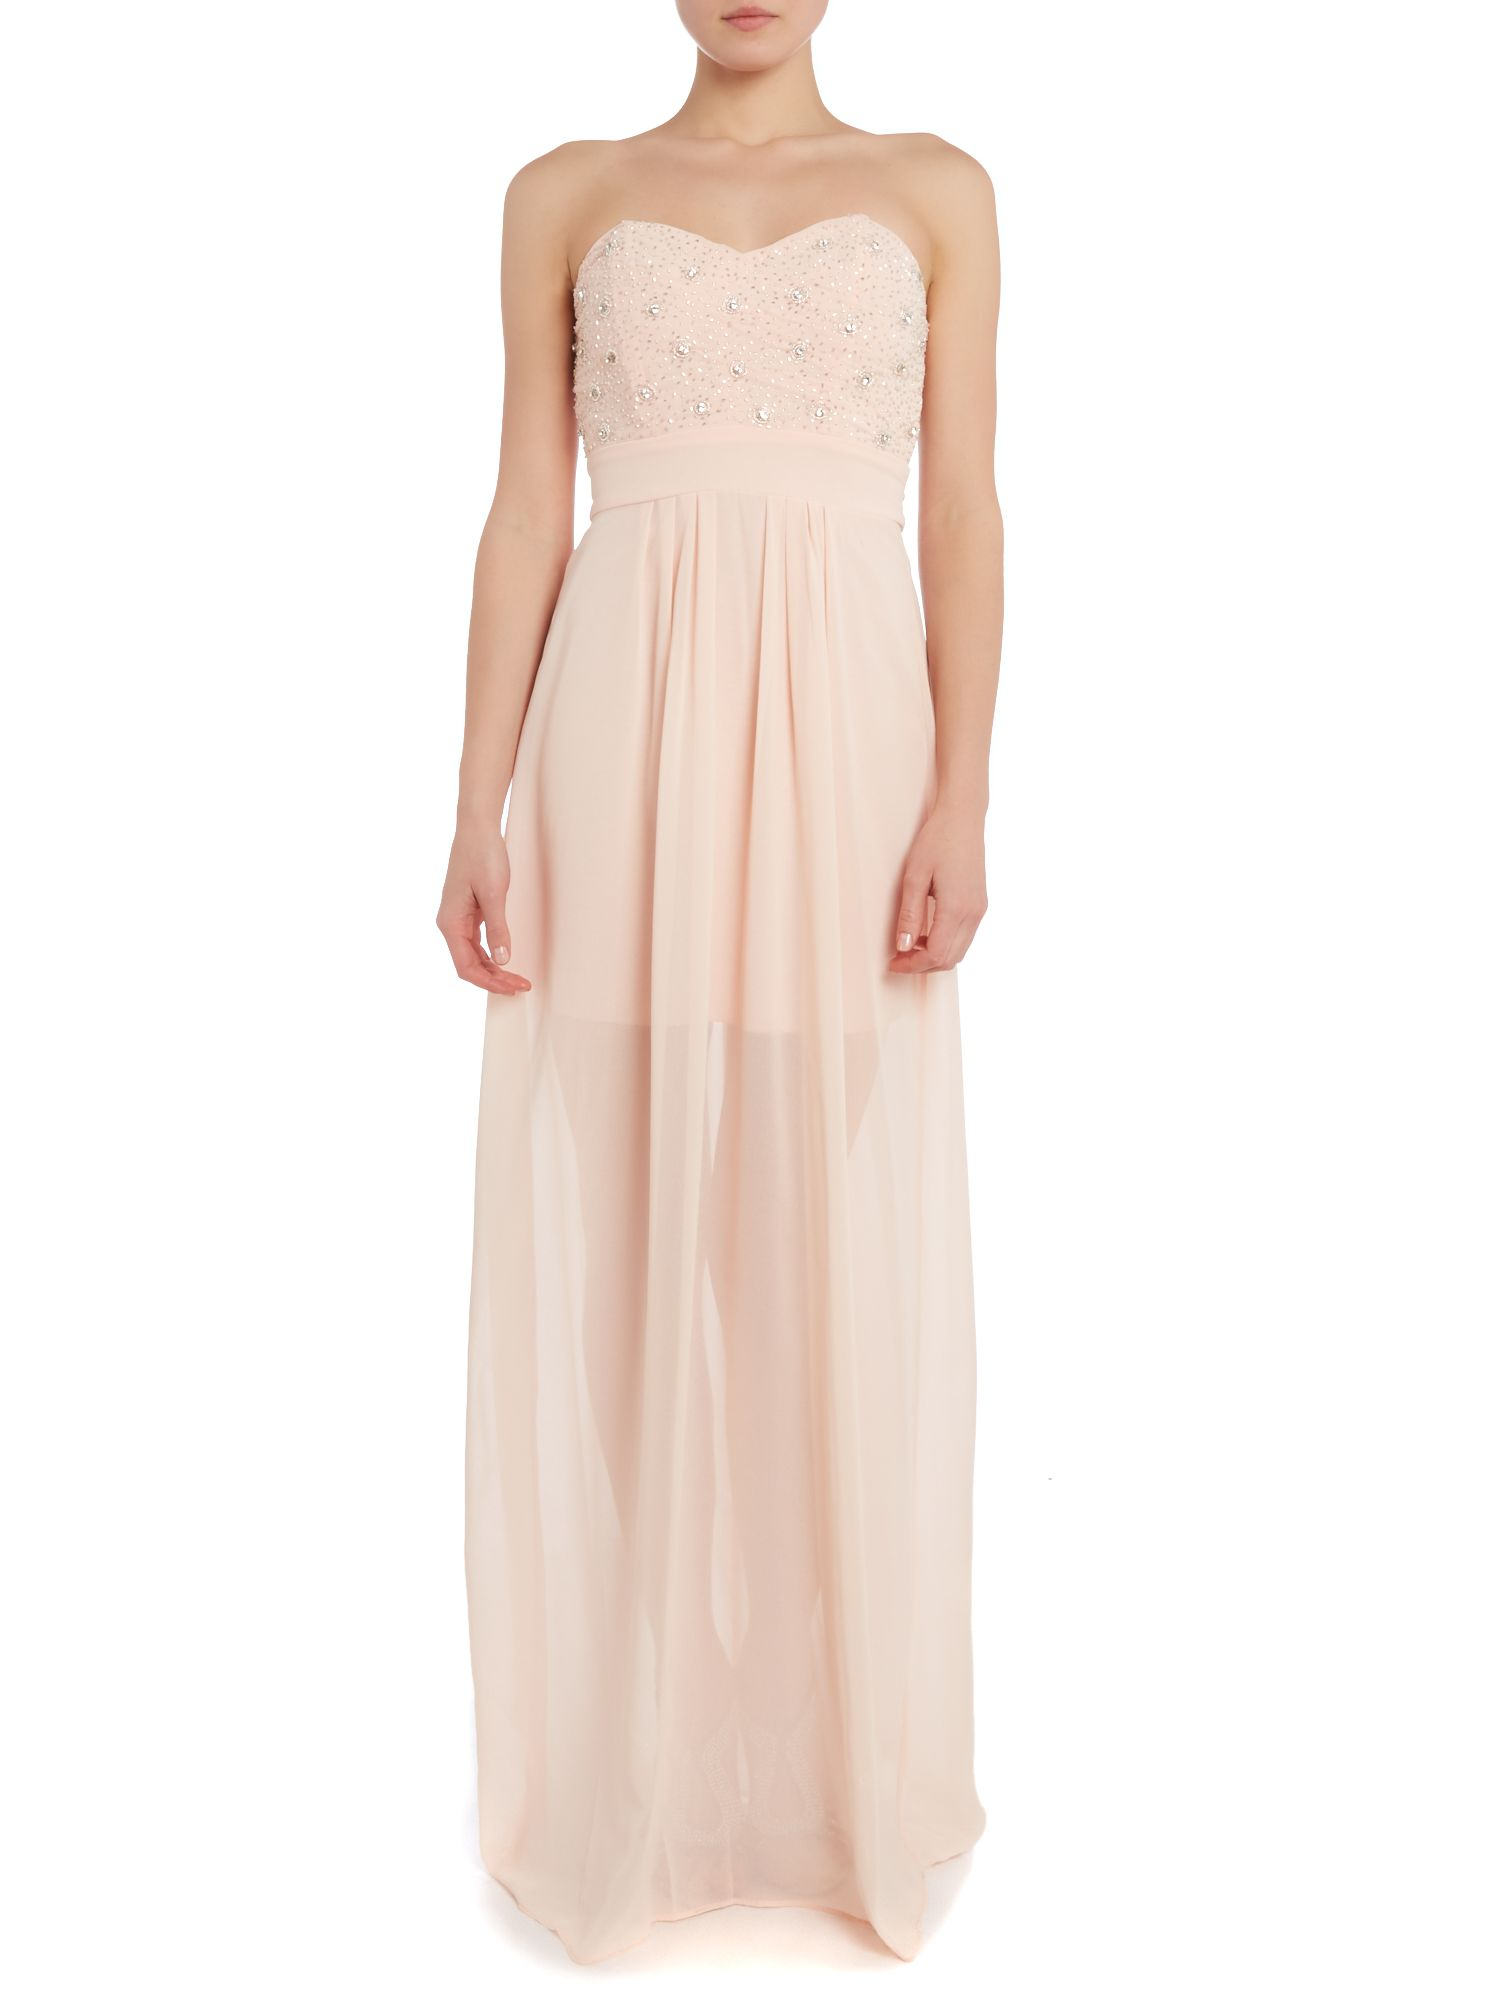 Strapless embellished top maxi dress